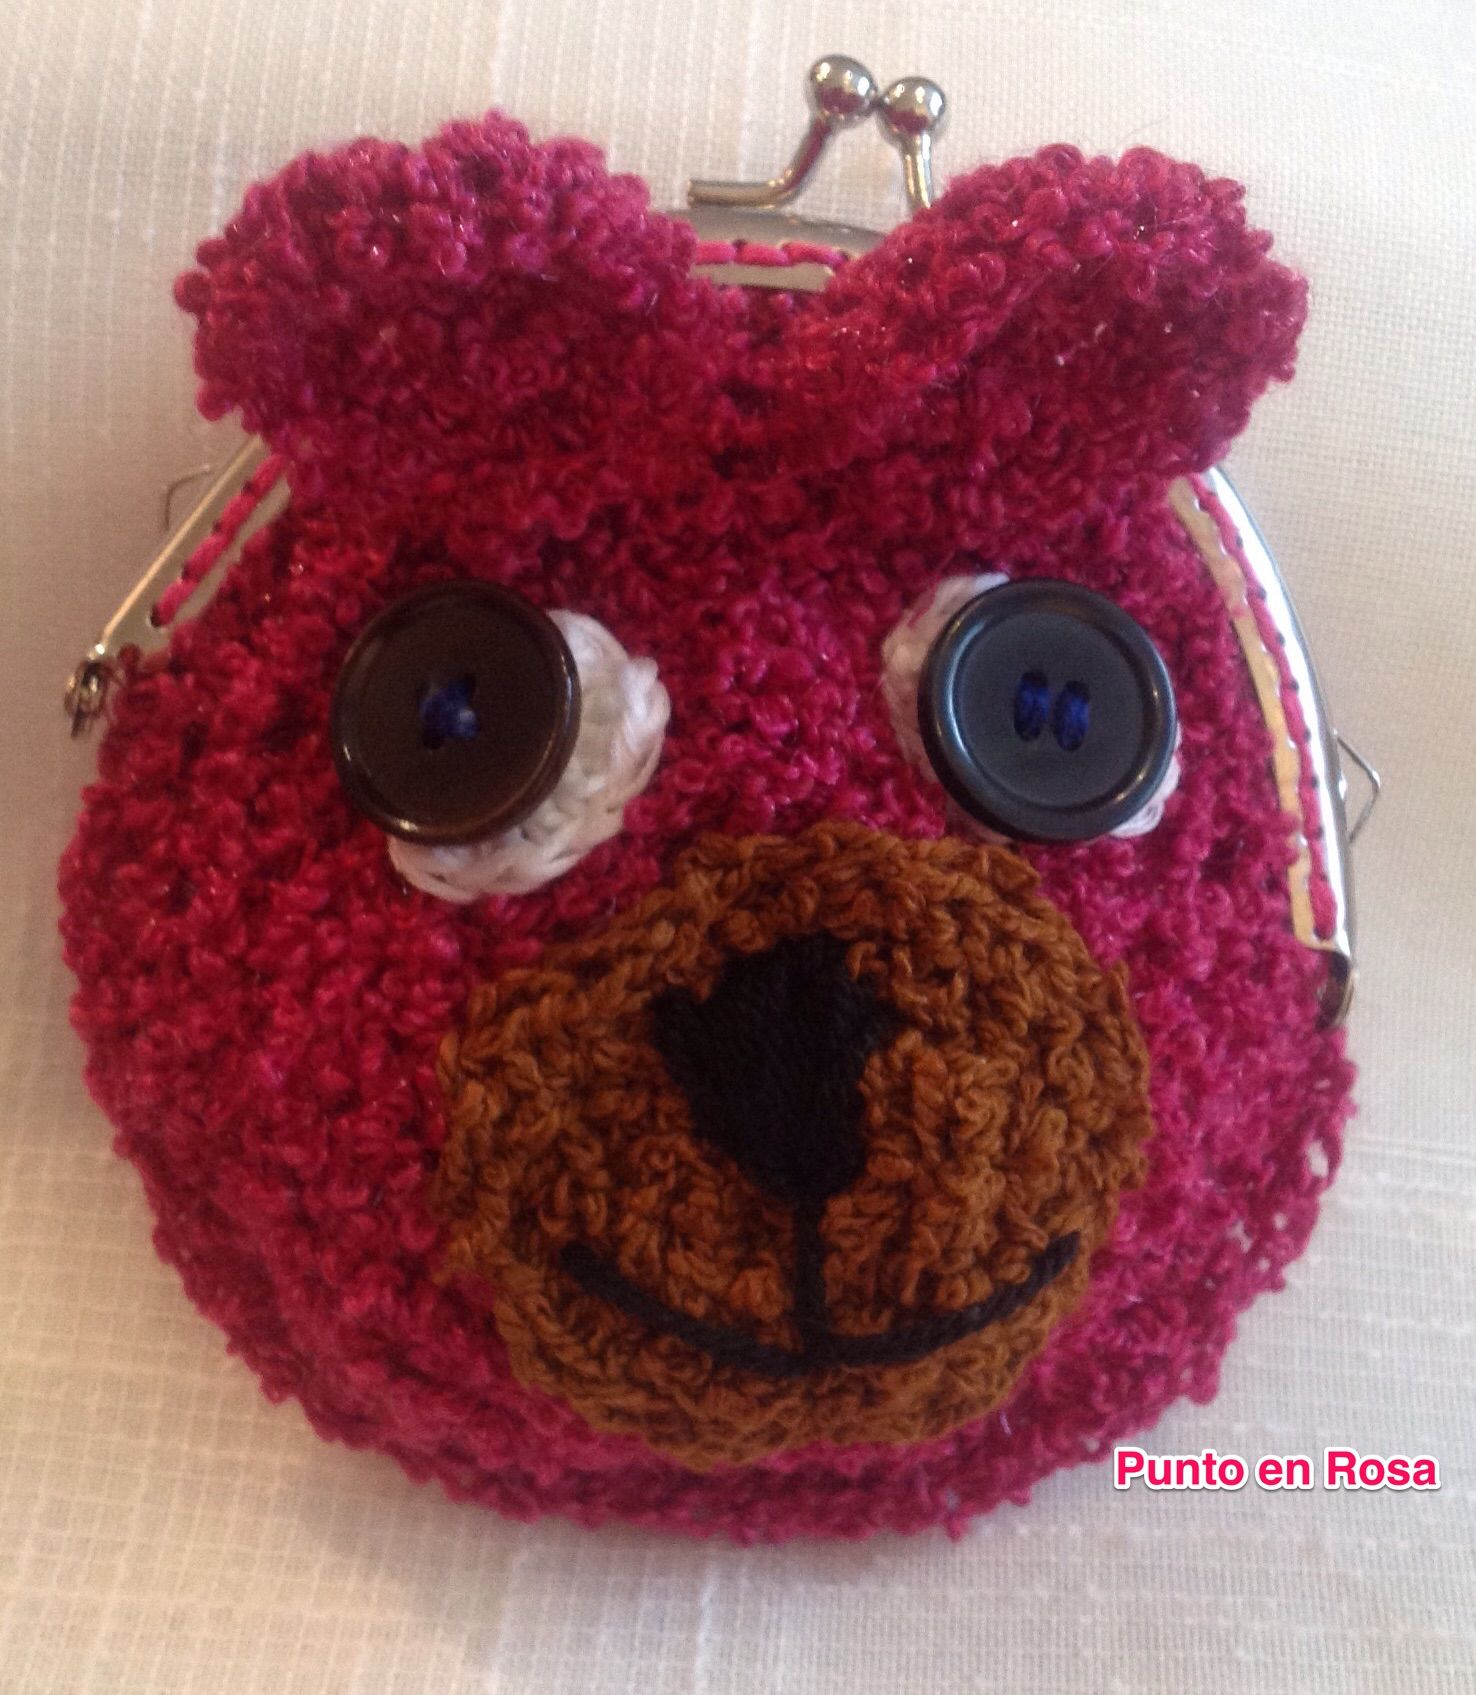 #Monedero #ganchillo . #Crochet #purse coin . porte-monnaie . #Oso #osito #bear